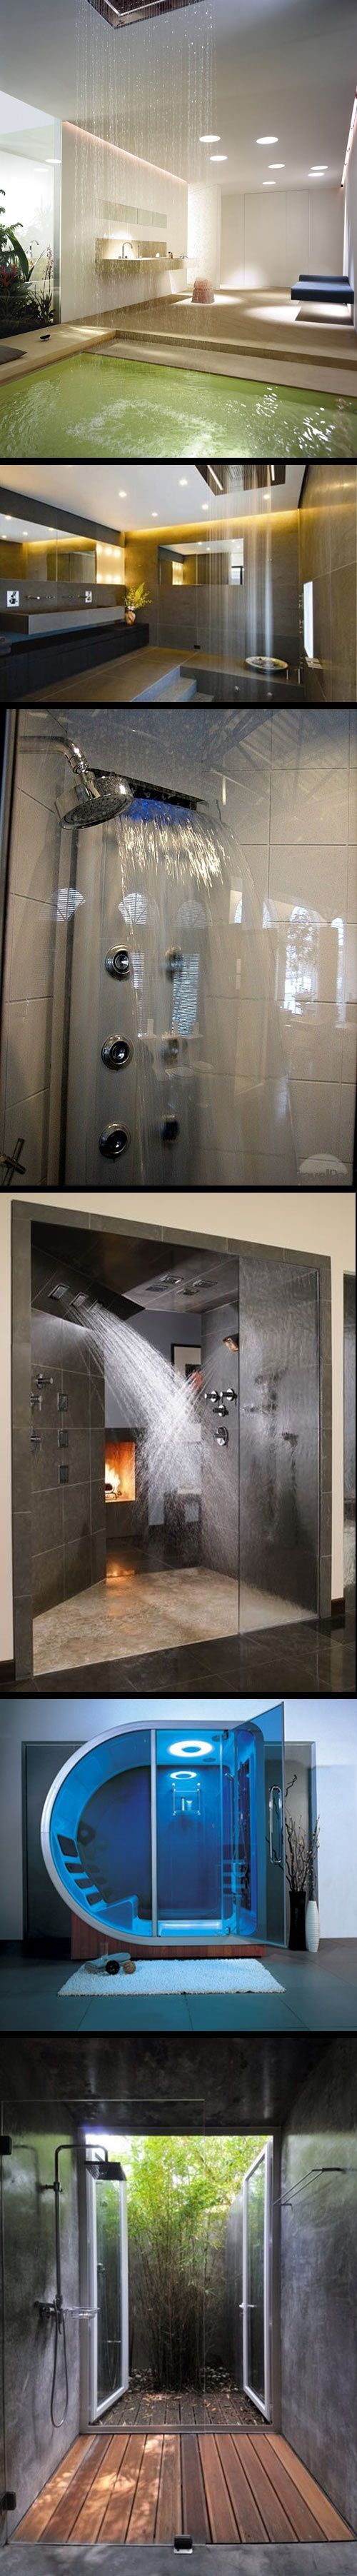 Cool and original shower designs...